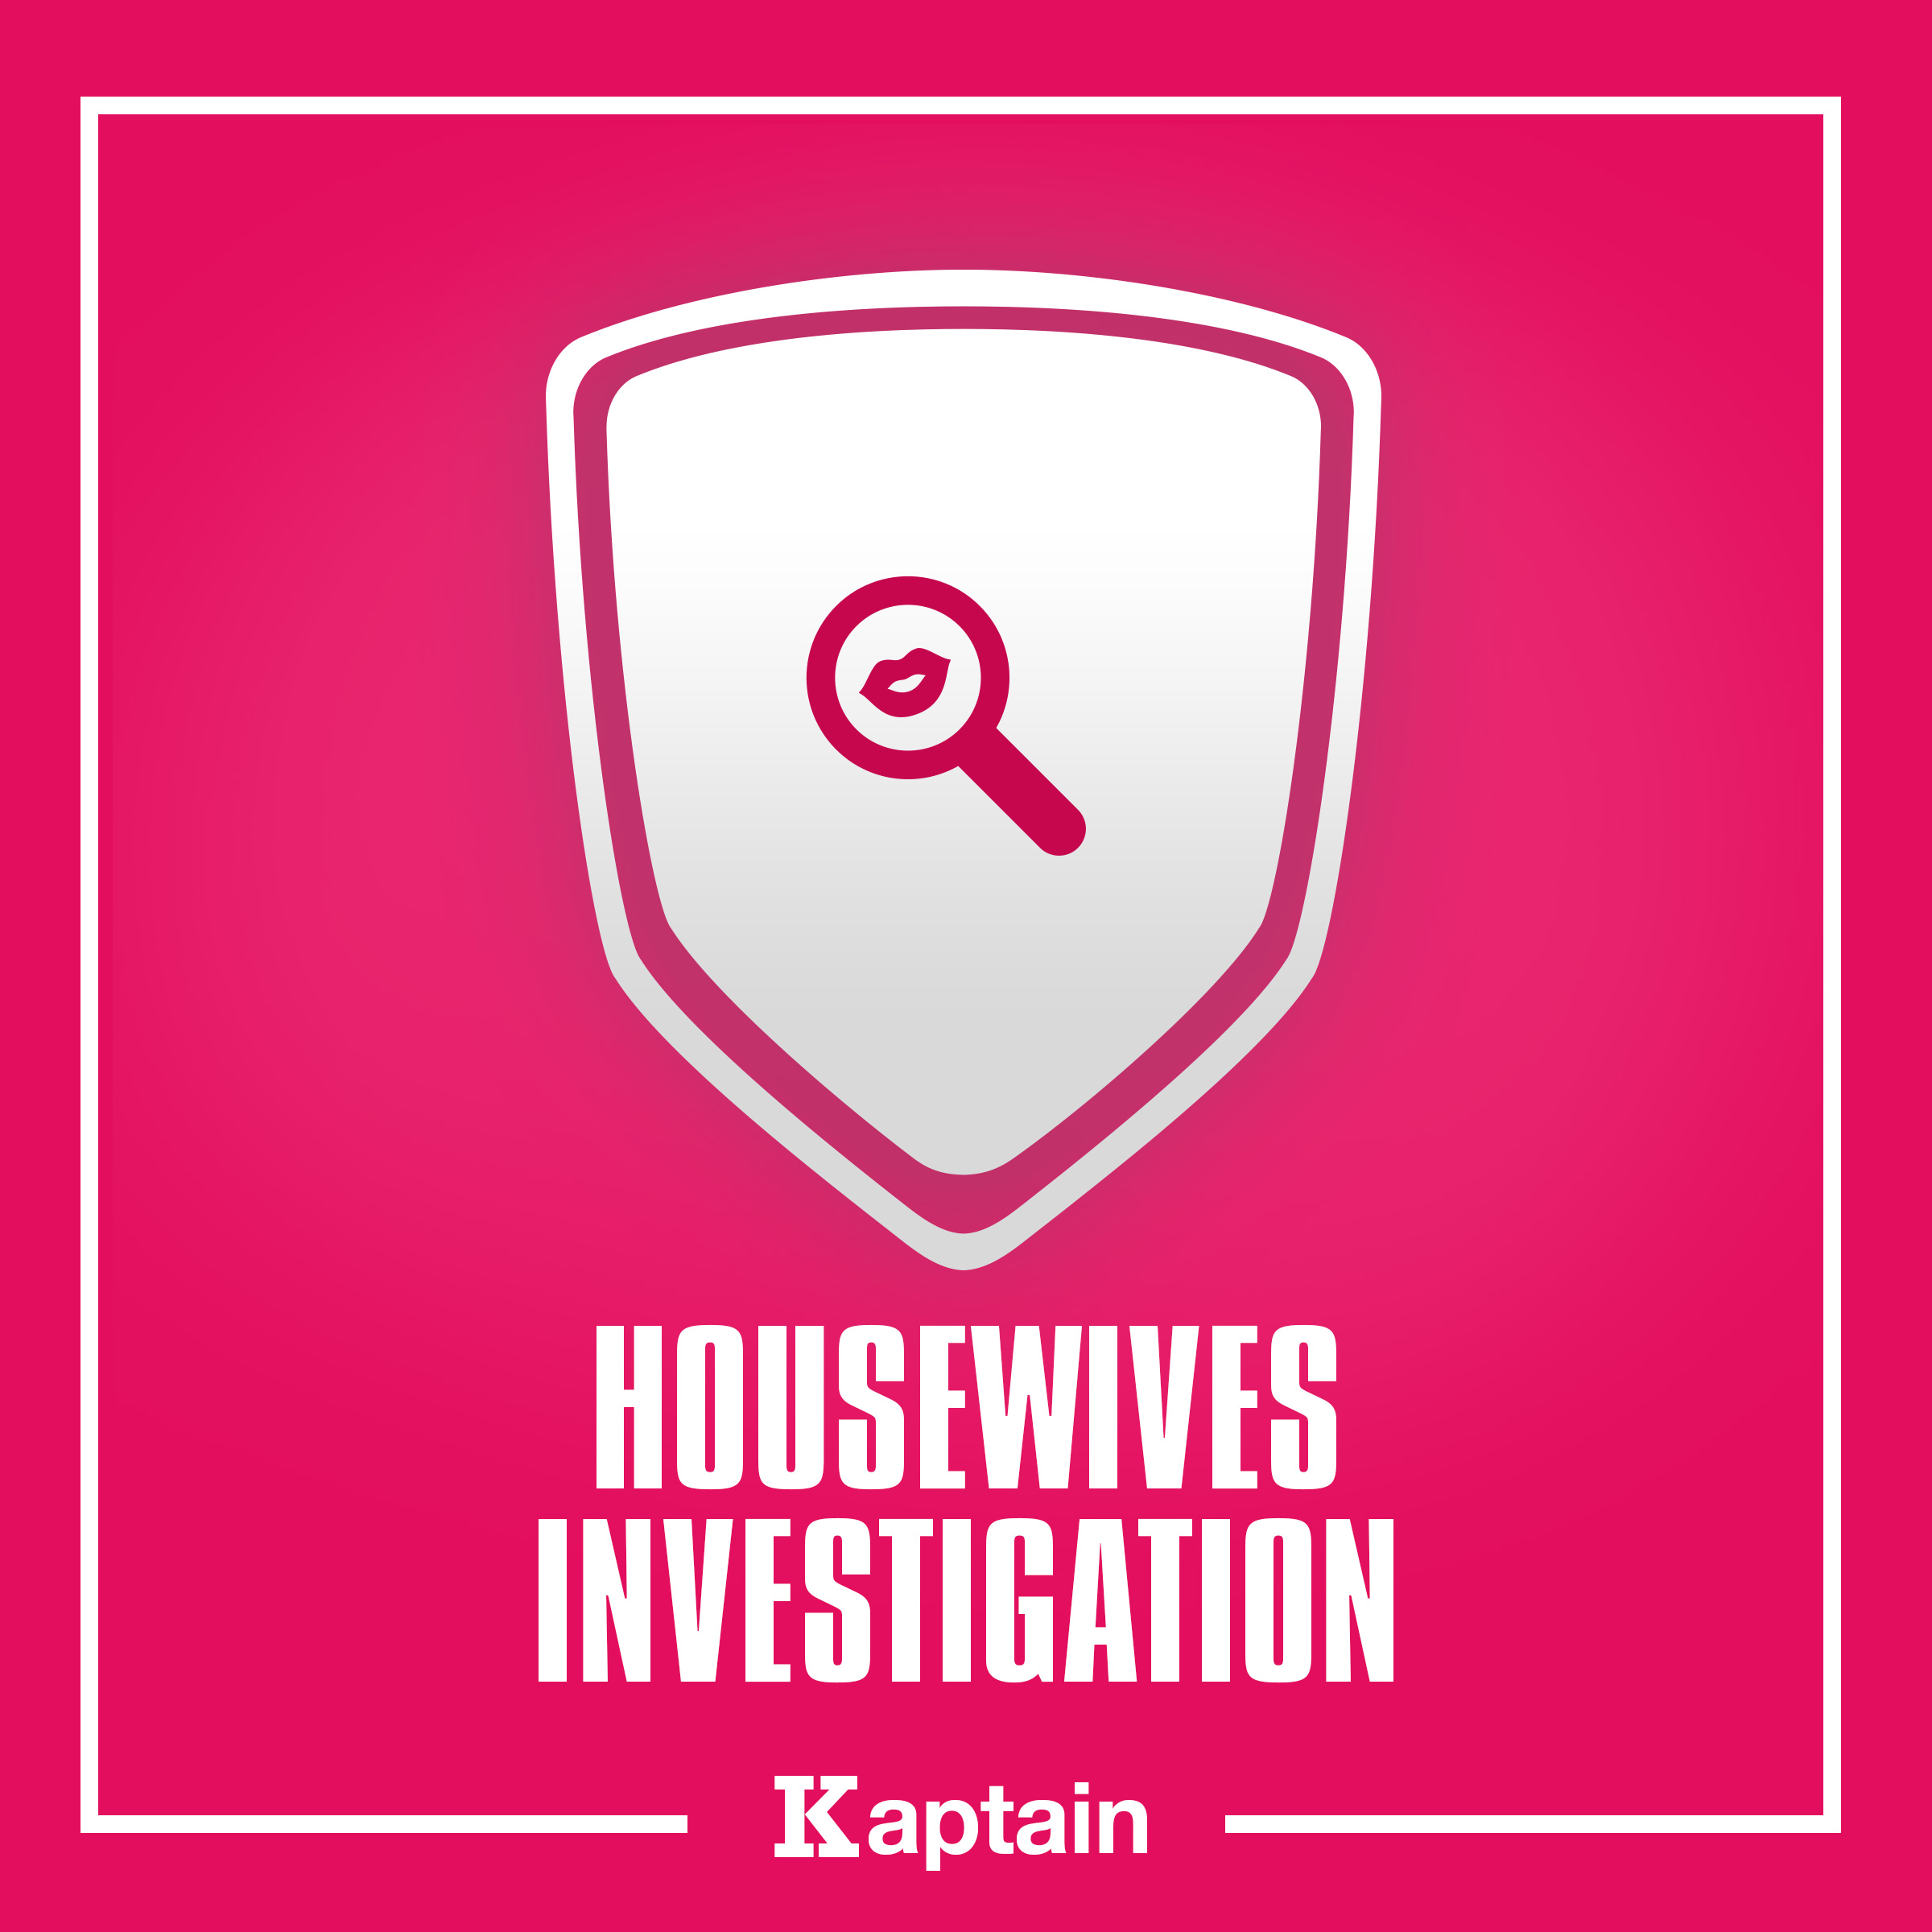 Housewives Investigation